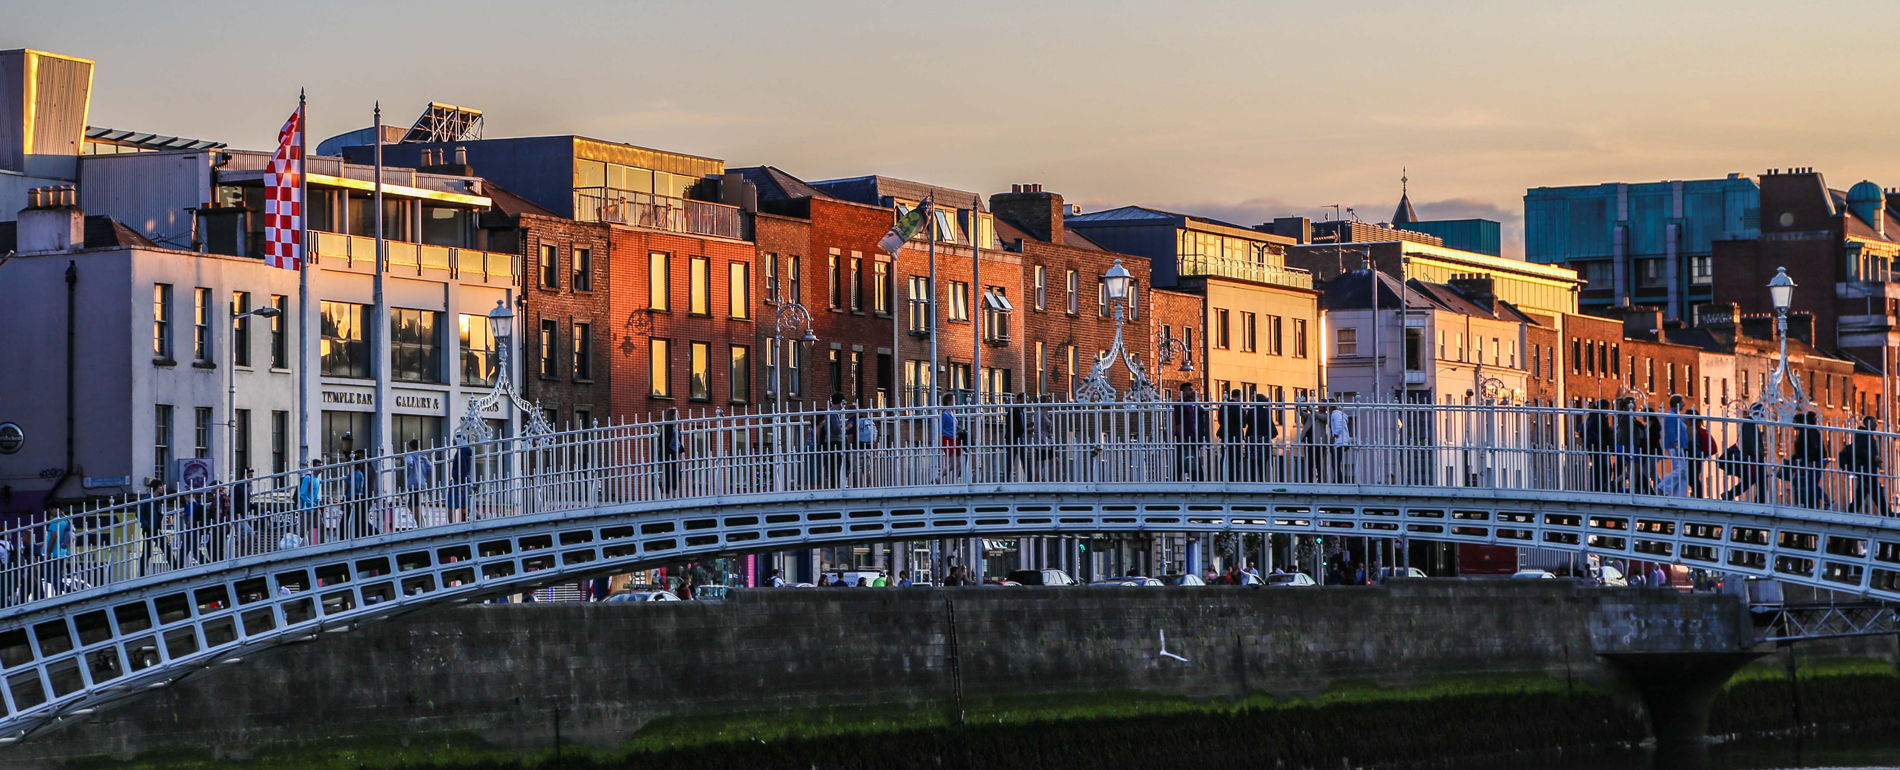 2019 ISPE Europe Annual Conference in Dublin Ireland